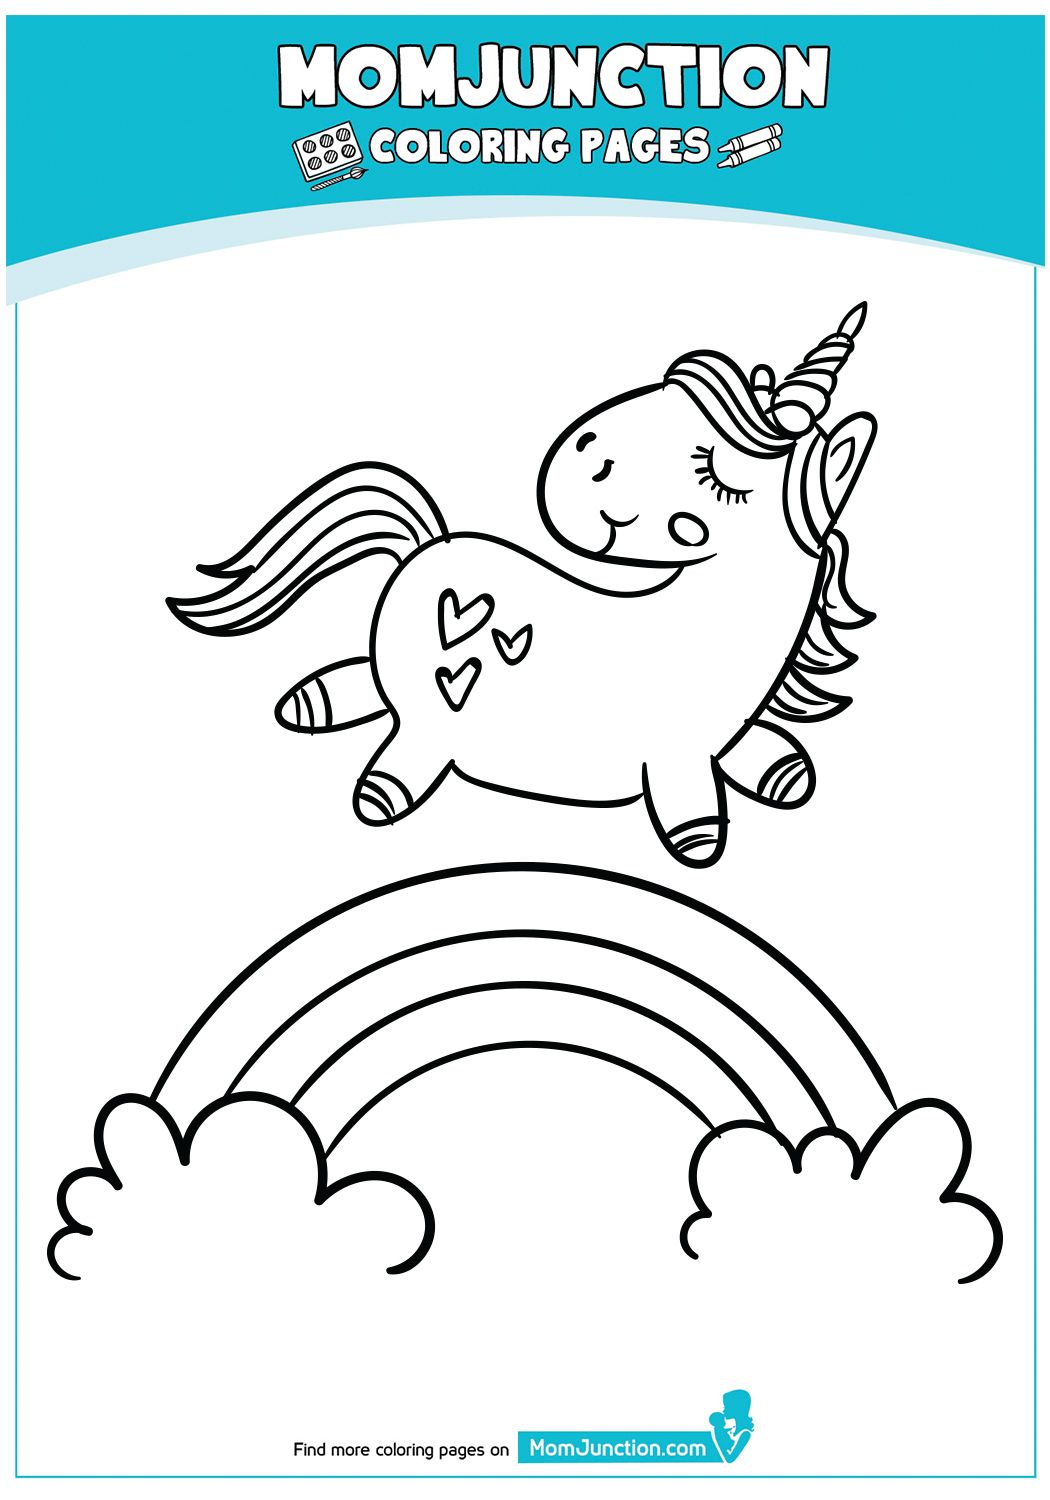 Print Coloring Image Momjunction Unicorn Coloring Pages Kids Christmas Coloring Pages Coloring Pages